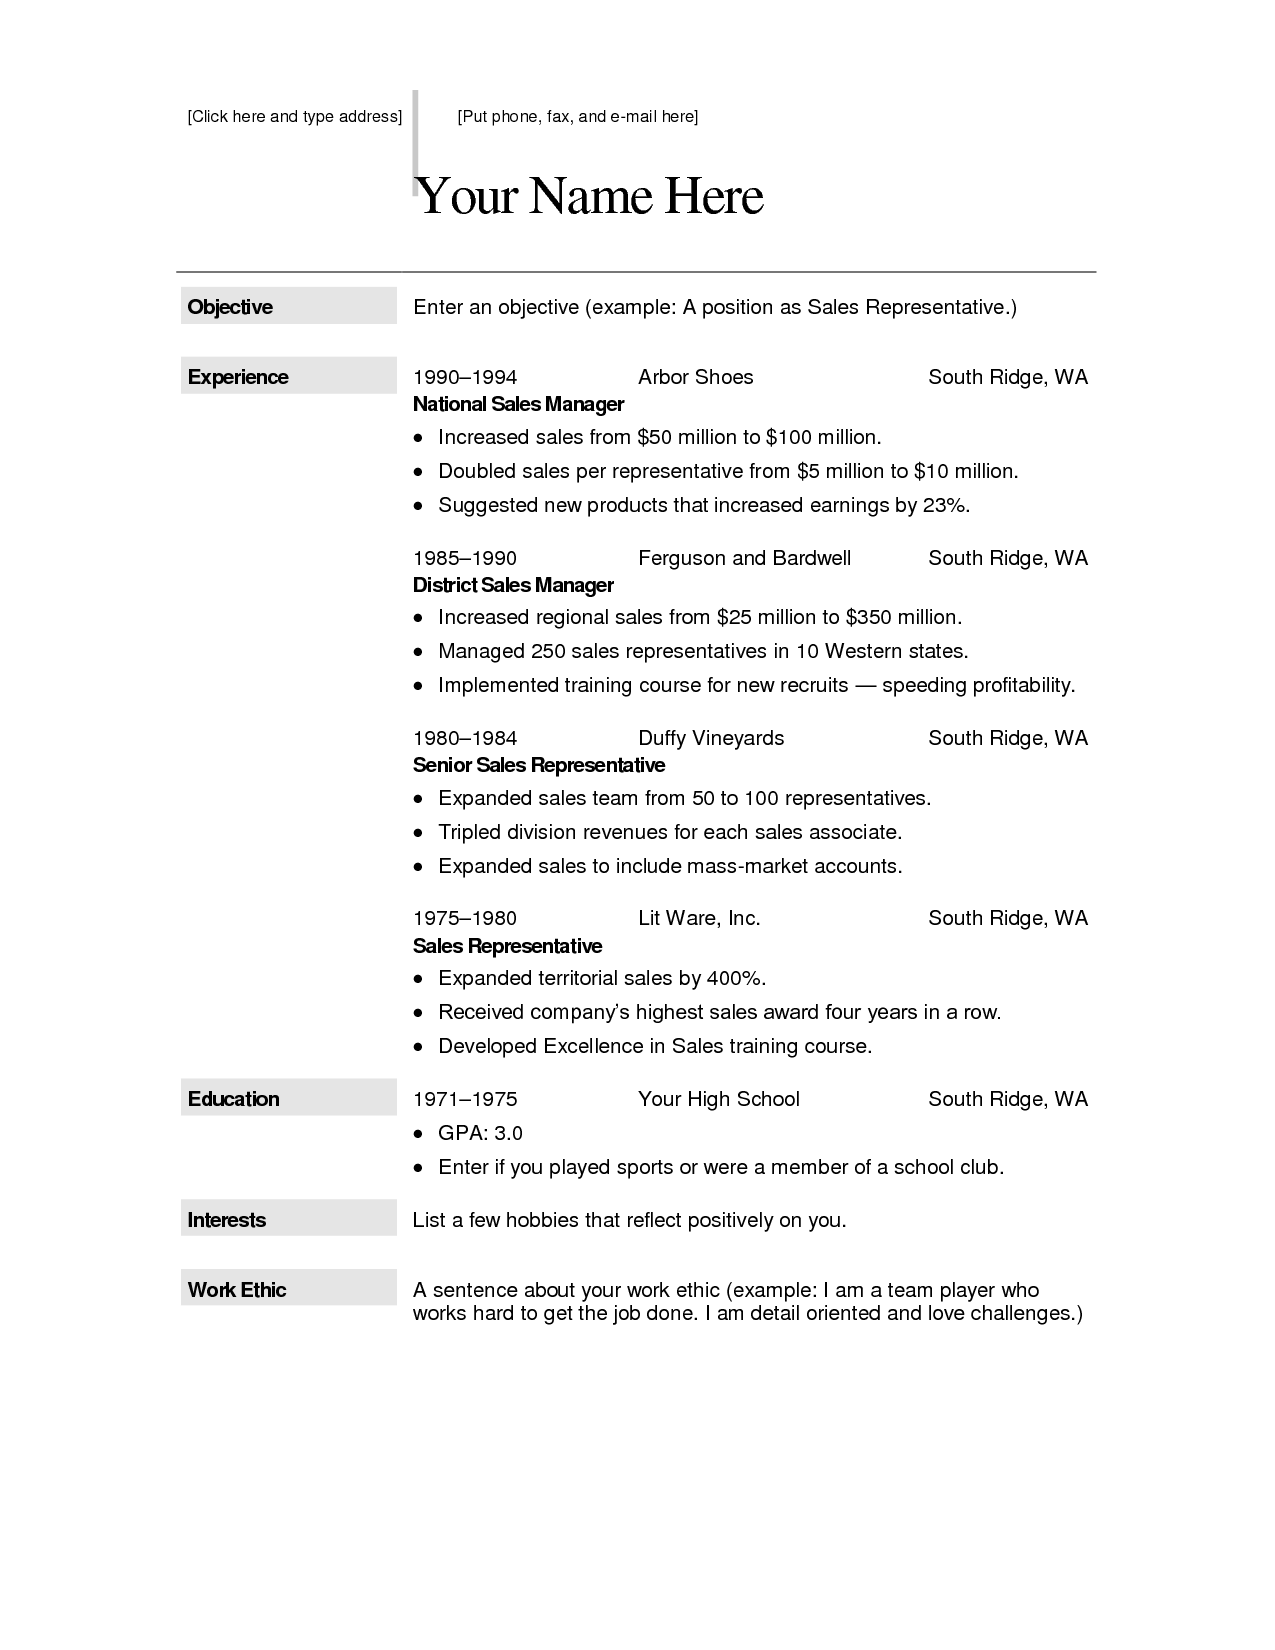 Resume Template Download Free Free Creative Resume Templates For Macfree Creative Resume